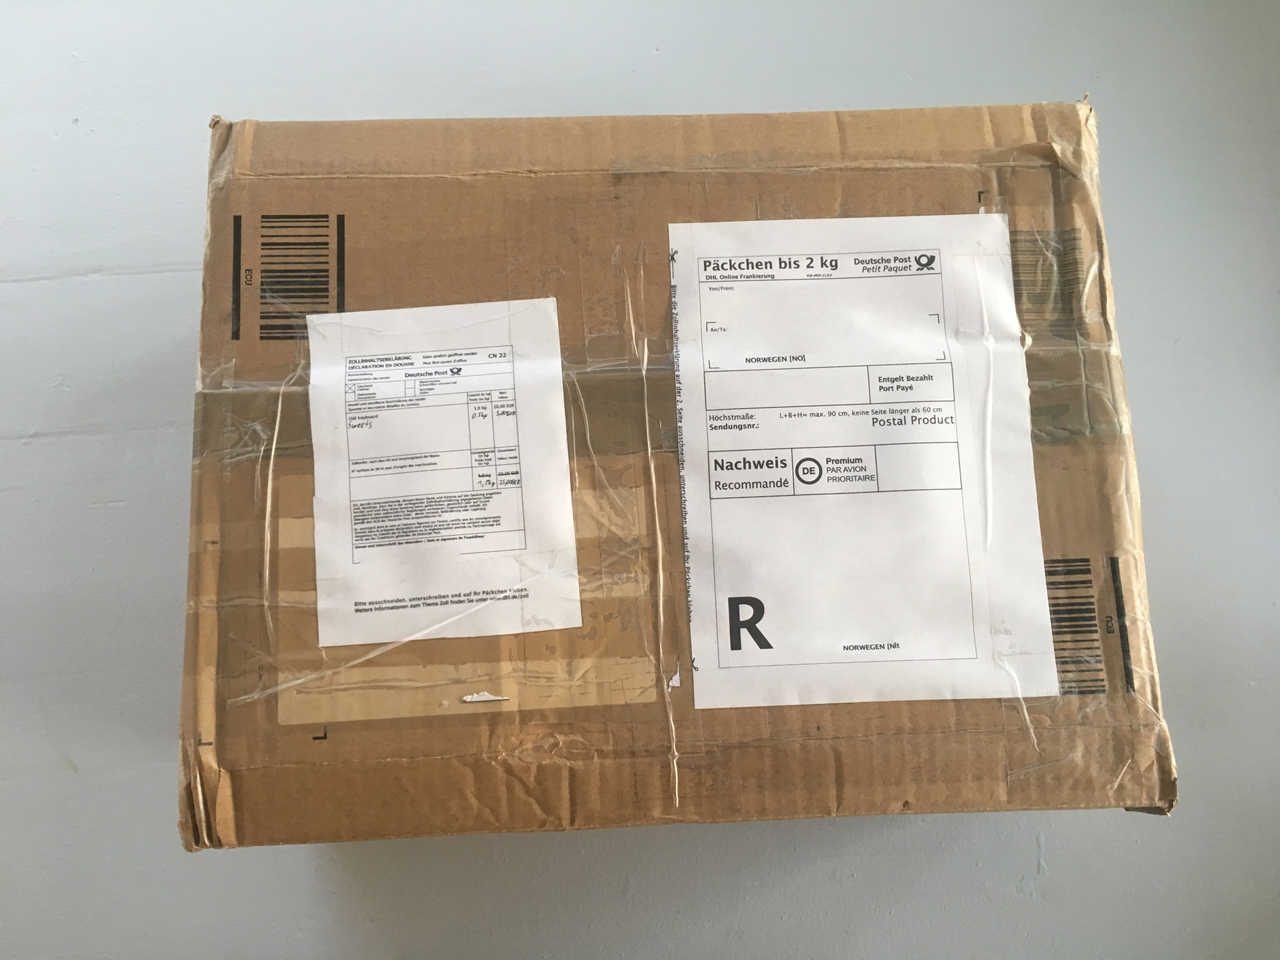 Big secret box from Germany!